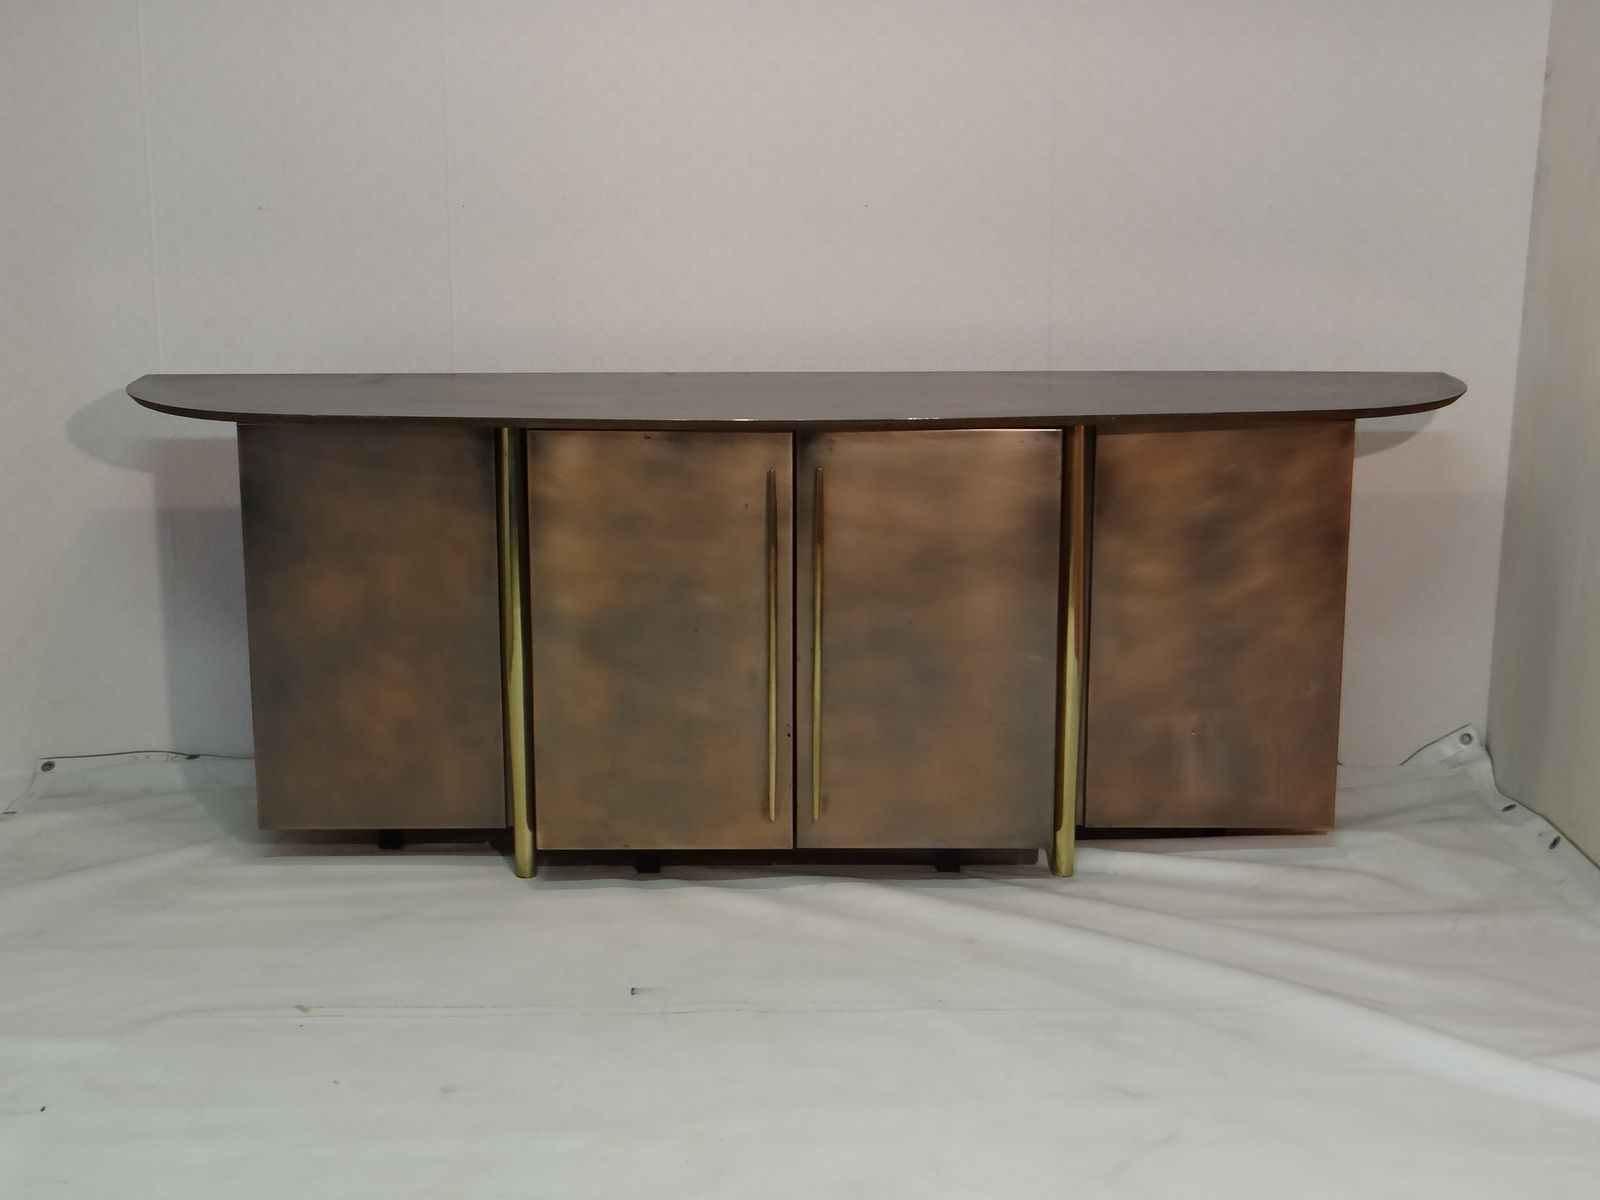 Vintage Brass Sideboard From Belgo Chrom For Sale At Pamono for Aged Brass Sideboards (Image 27 of 30)